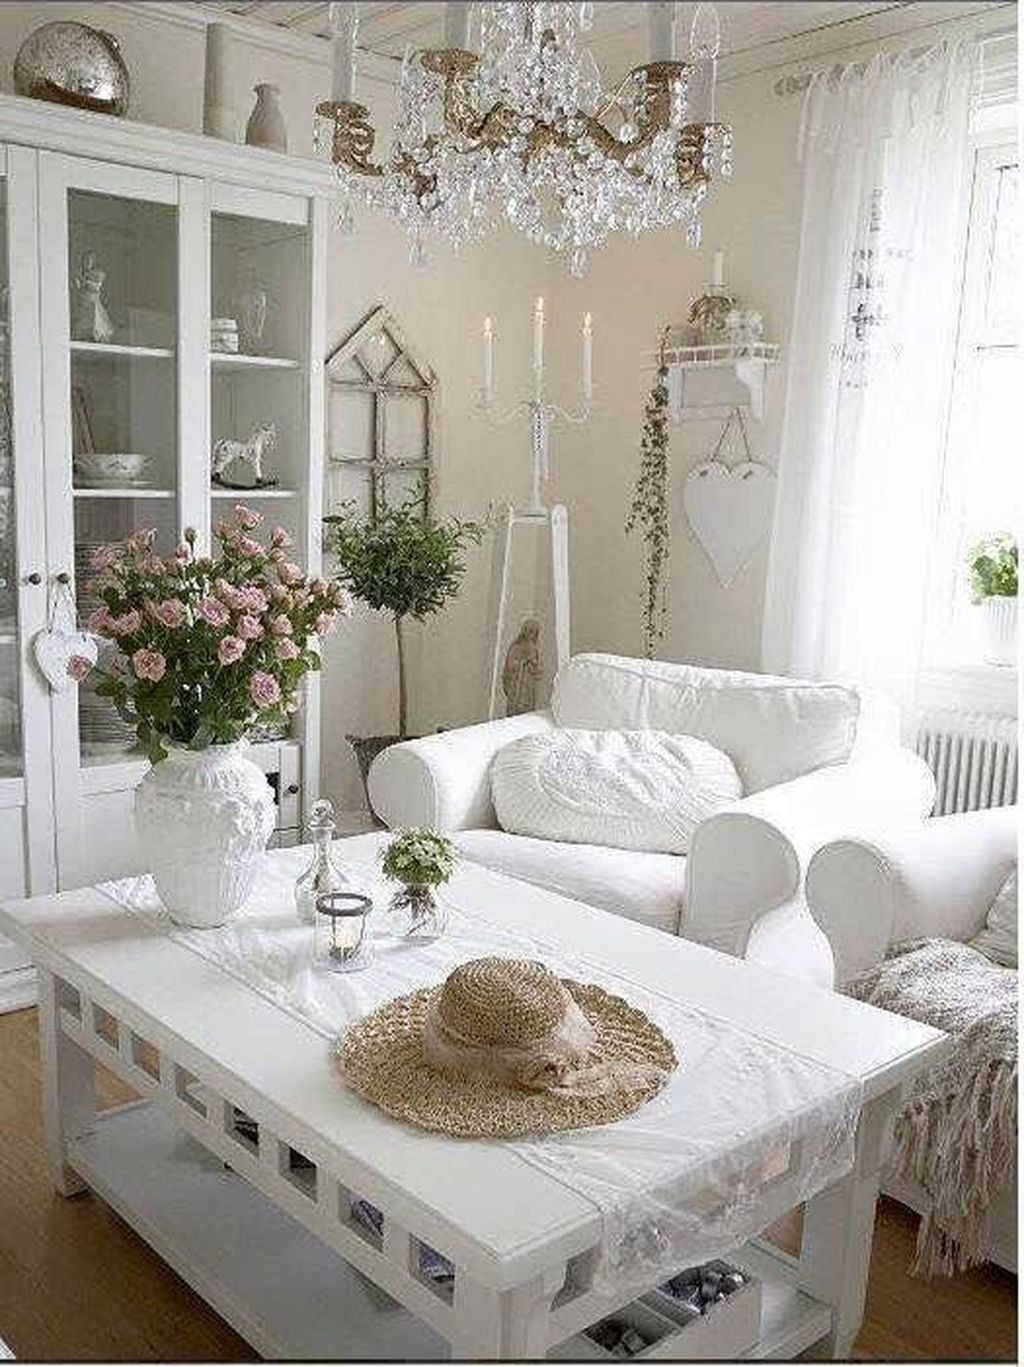 20+ Fabulous Shabby Chic Farmhouse Living Room Decor Ideas